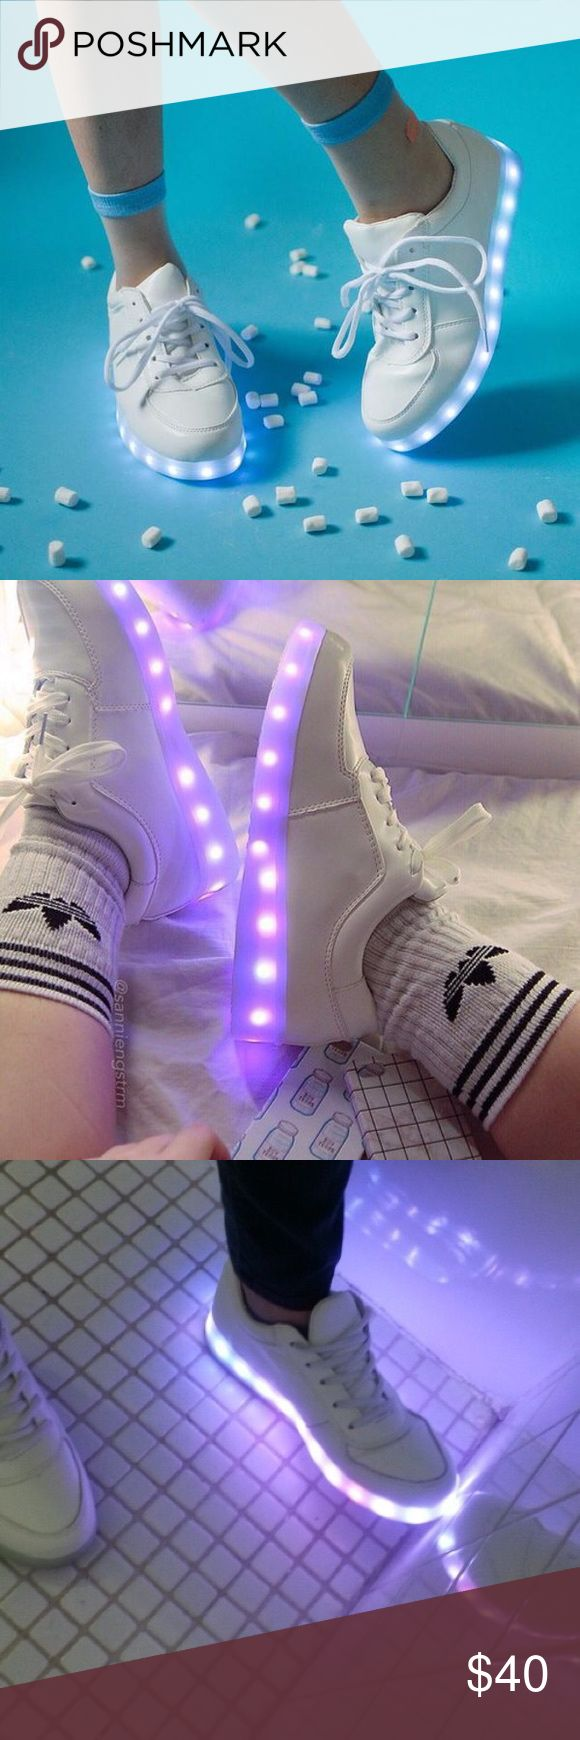 LED LIGHT UP WHITE SHOES BRAND NEW SIZE 8.5 Adorable pair of new led light up shoes that are in a woman's size US 8.5. Never worn and will come with the charger. Shoes Sneakers